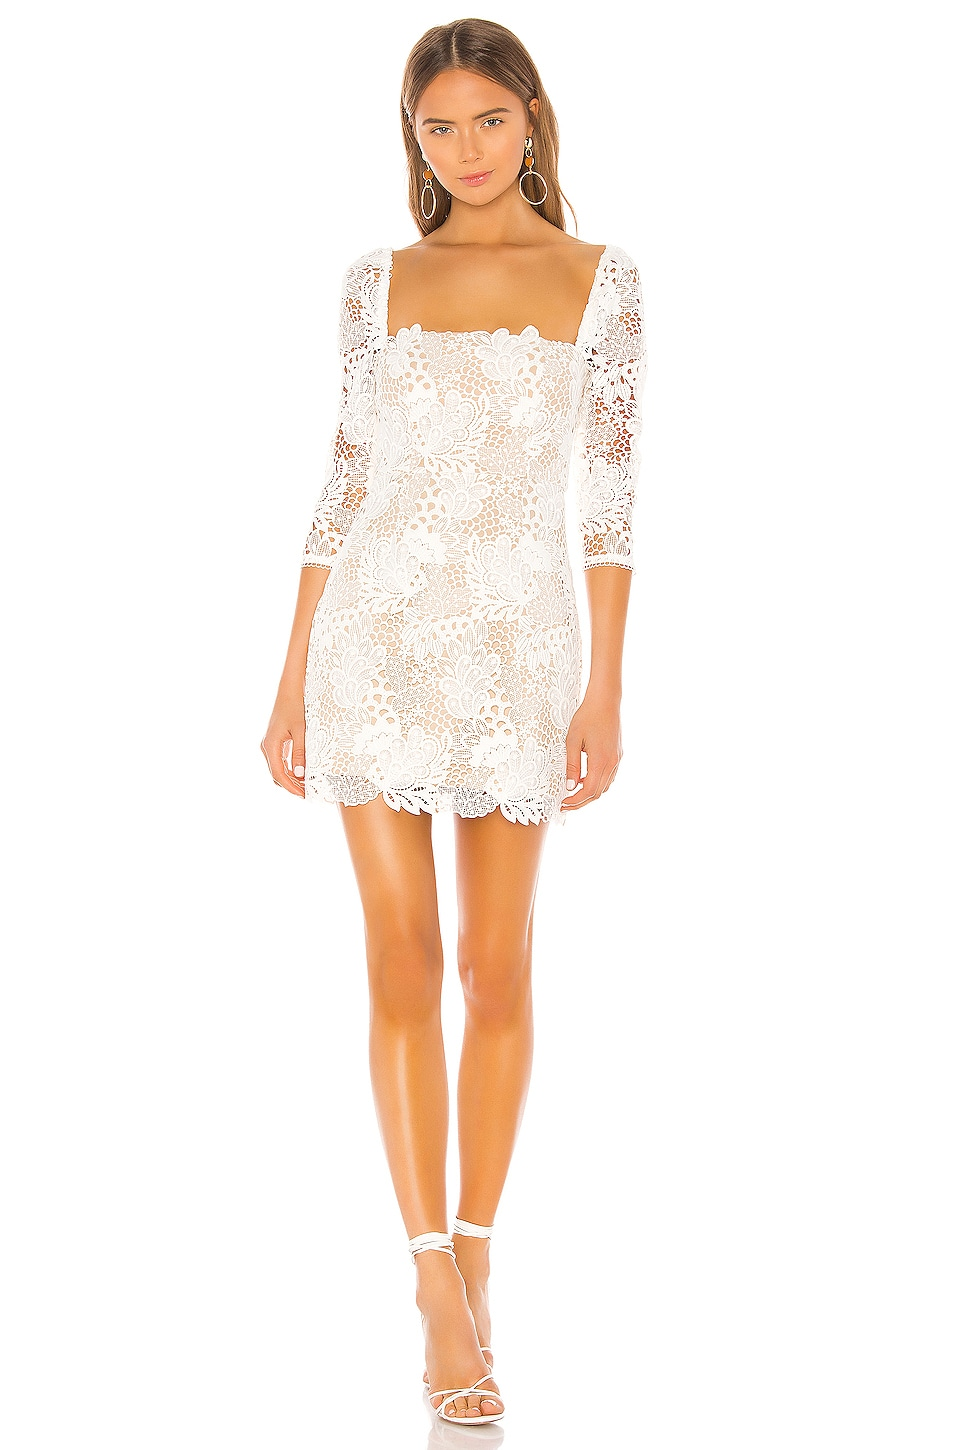 X by NBD Tove Mini Dress in Ivory